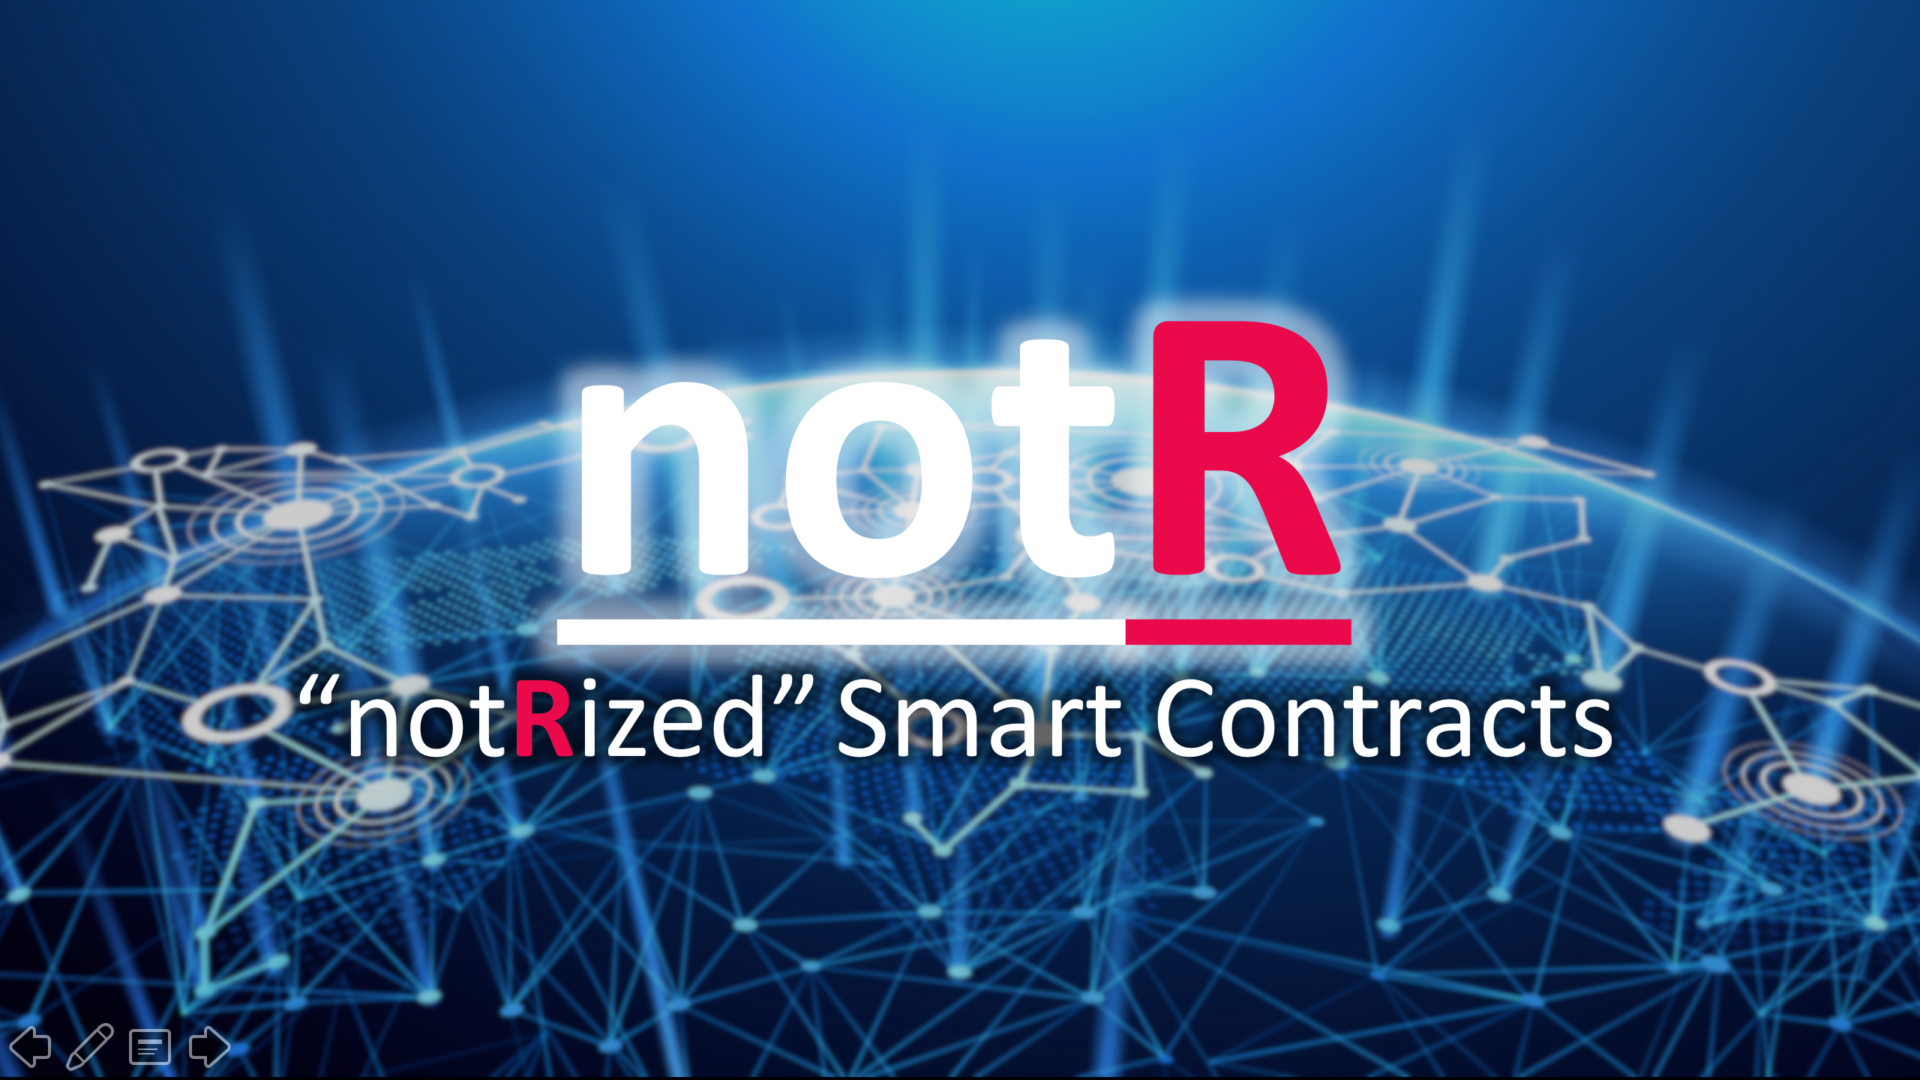 notR – notarized Smart Contracts